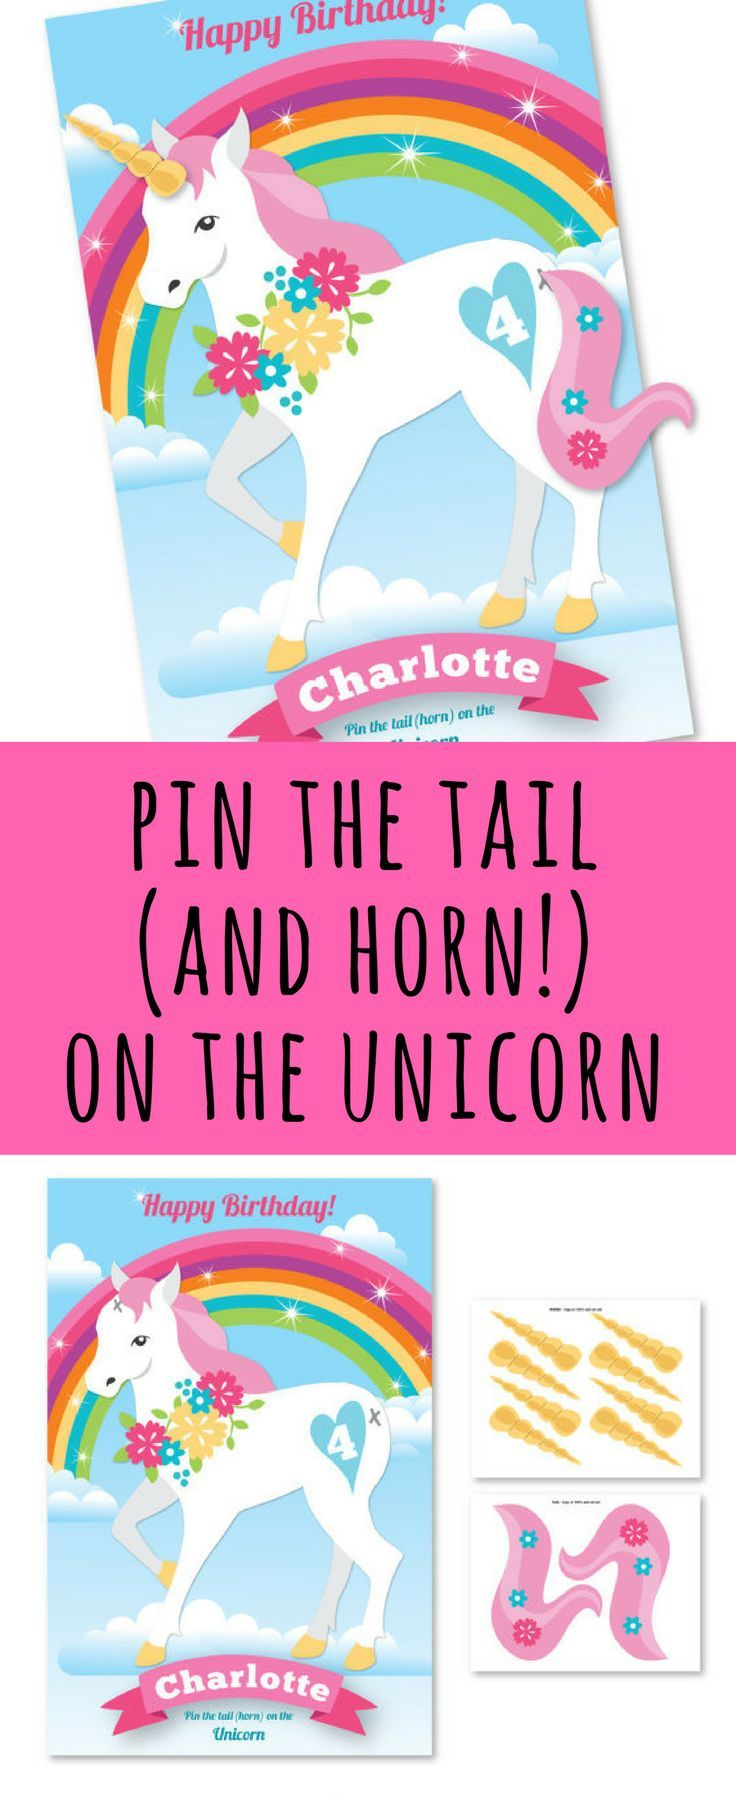 pin the tail and horn on the unicorn party game, easy and